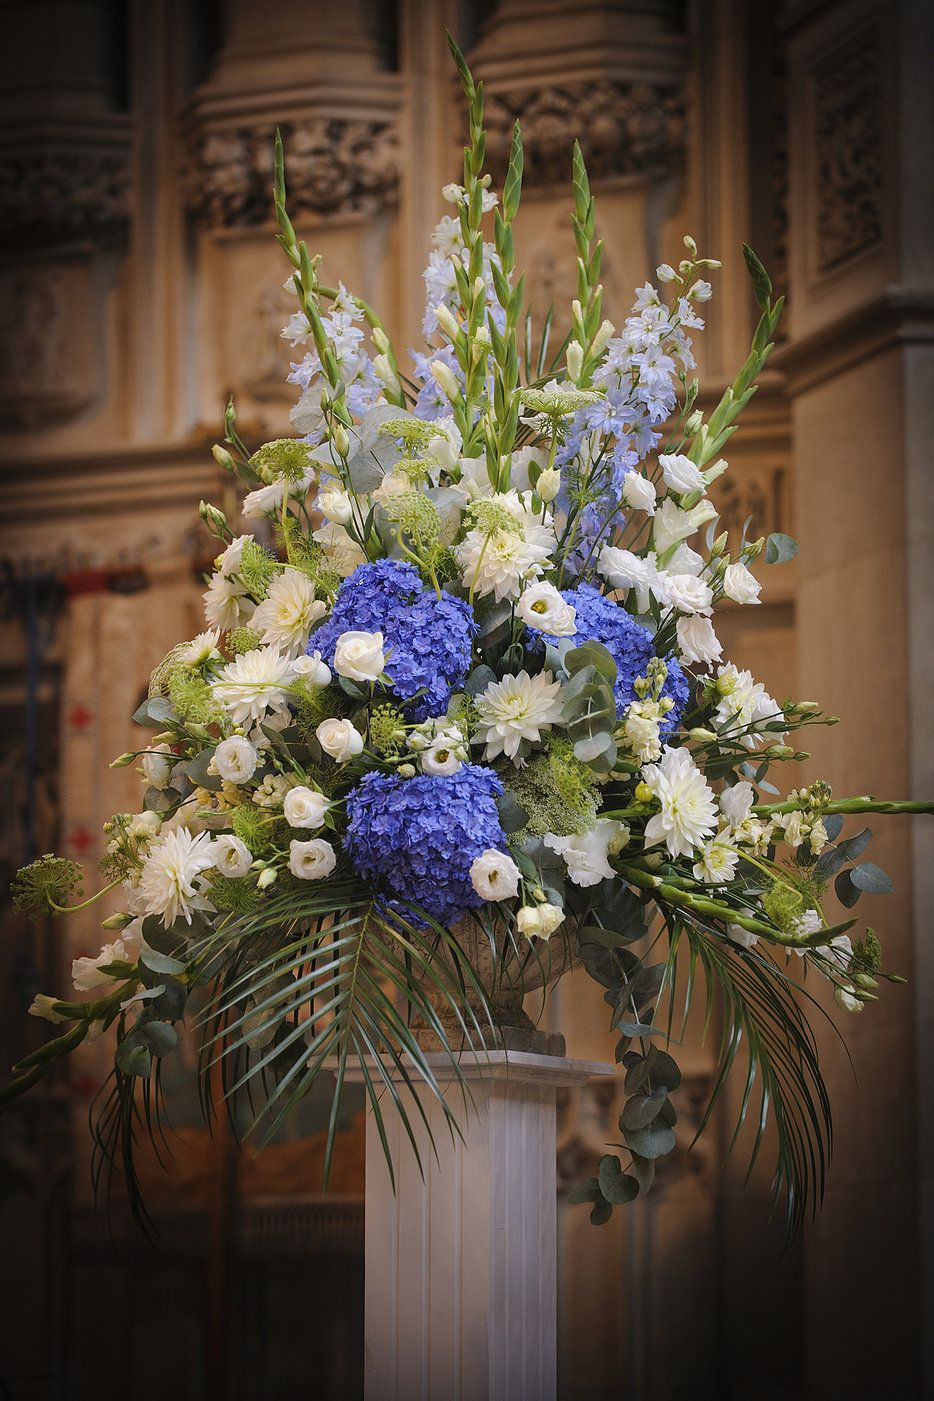 church wedding flower arrangements periwinkle blue hydrangea and white church flower display 2947